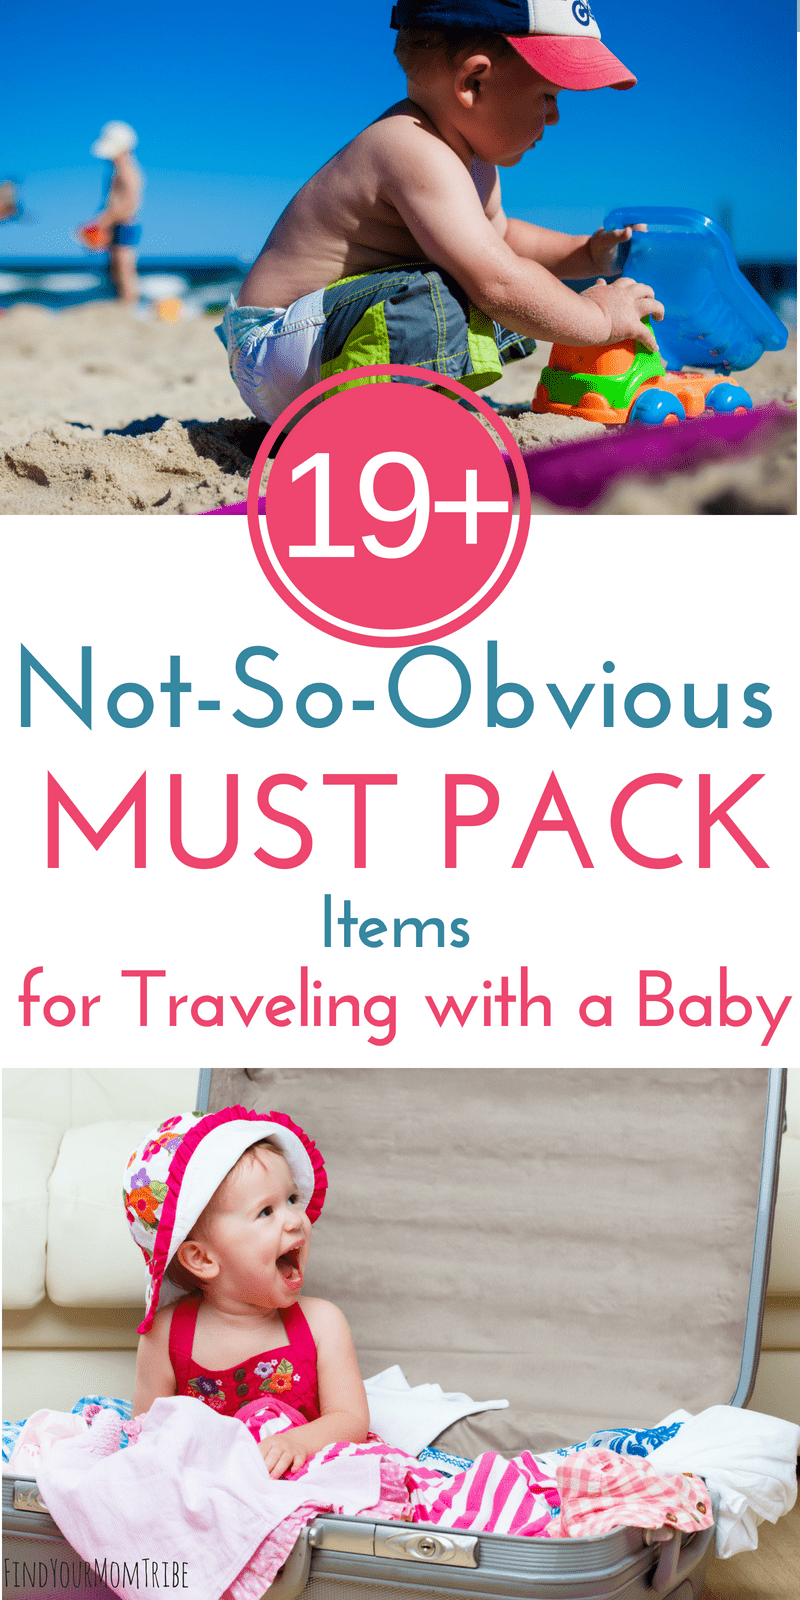 Whether you're traveling with a baby or a toddler, you won't want to forget these 19 genius items! Packing these not-so-obvious baby travel essentials will help your baby sleep better on vacation and stay healthy! (Baby travel tips included!) #vacation #babytravel #familyvacation